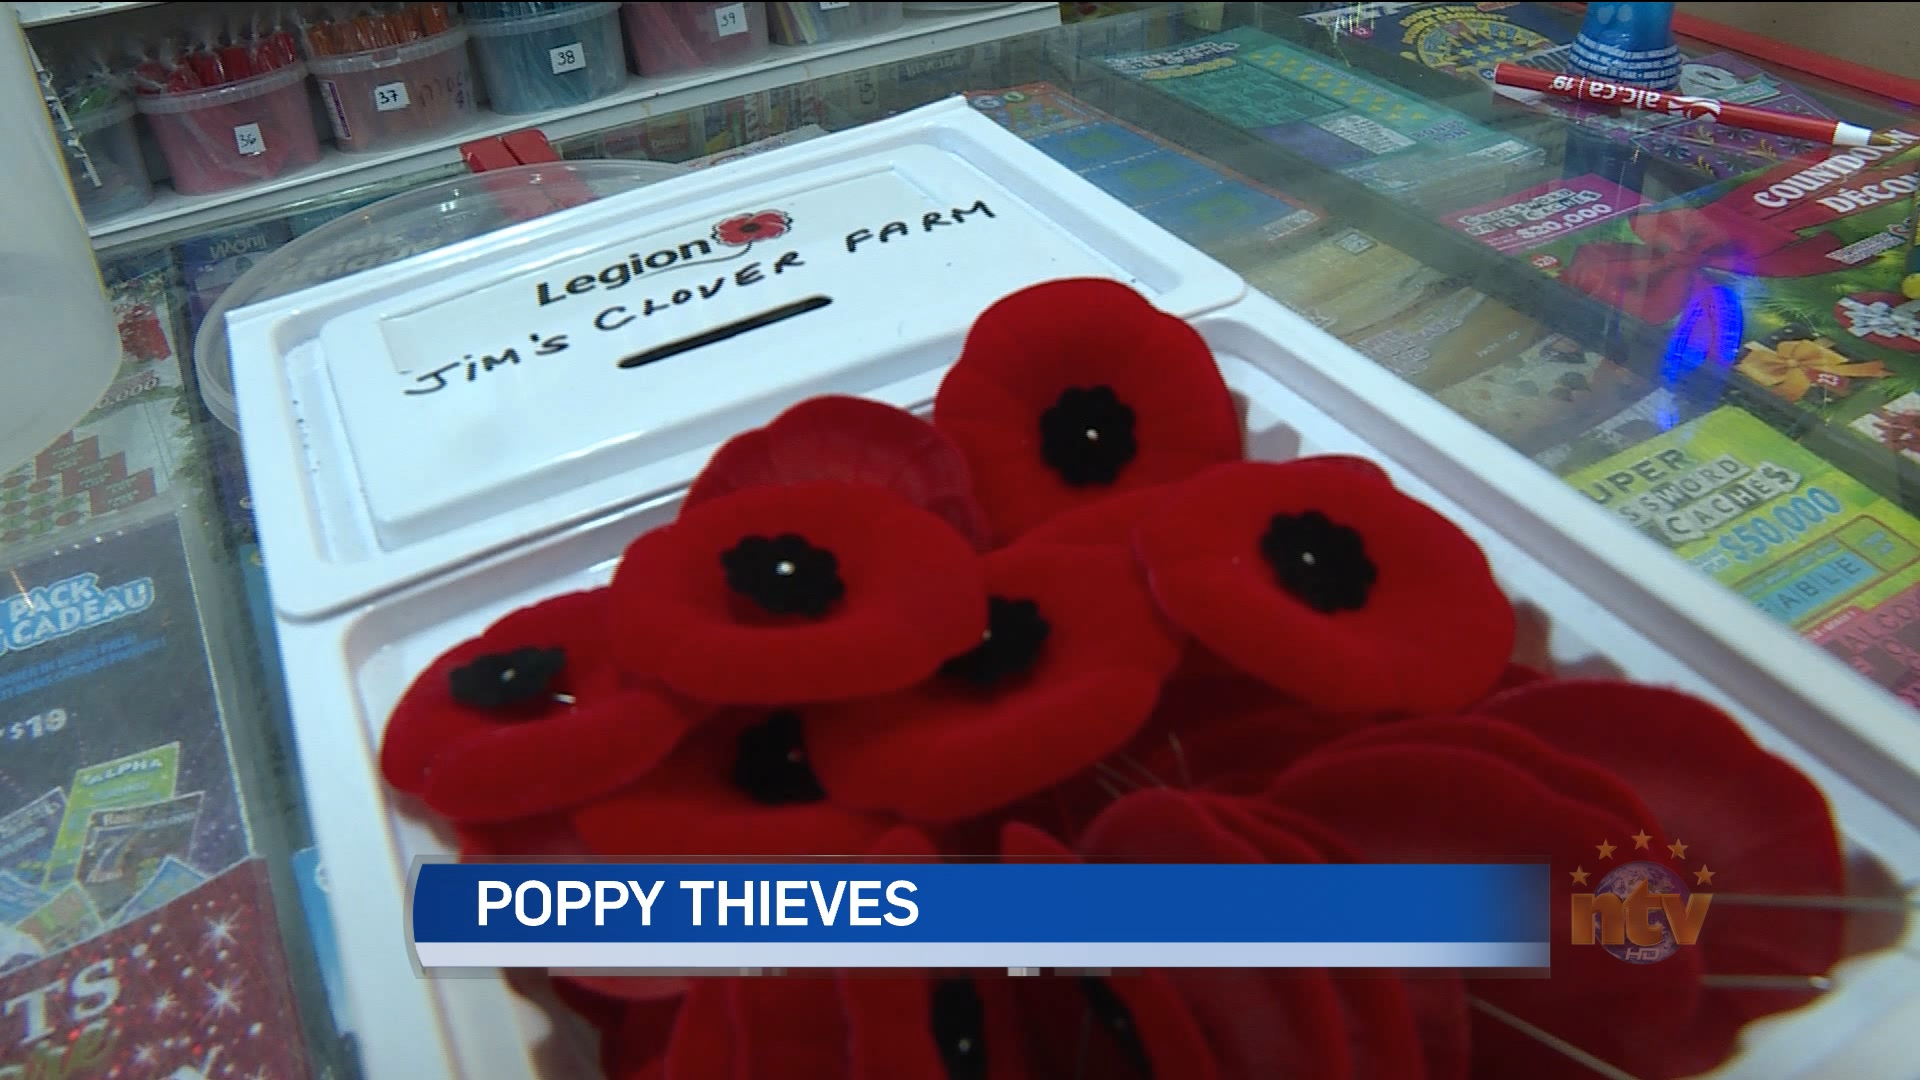 Poppy trays stolen in Grand Falls-Windsor - NTV News